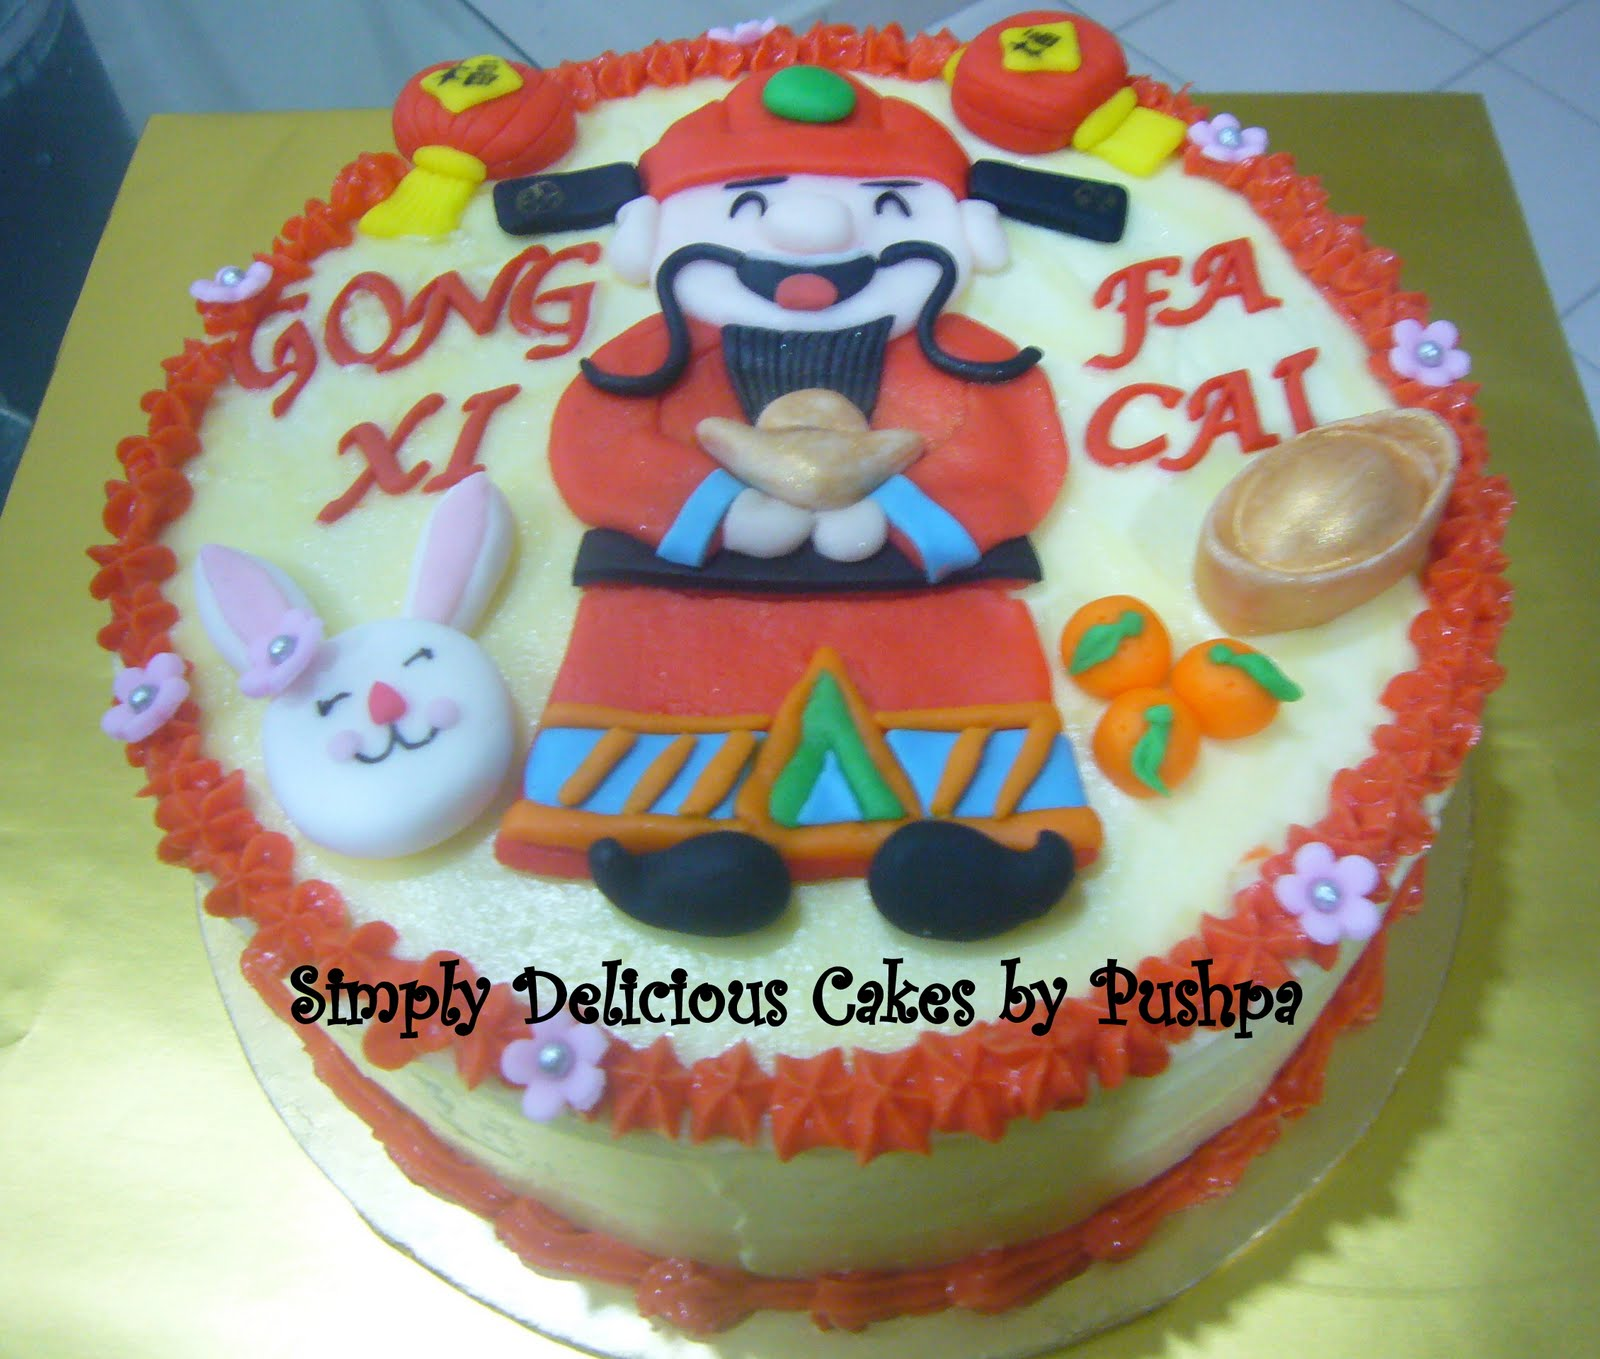 chinese new year cake simply delicious cakes new year cakes 2011 year 2792